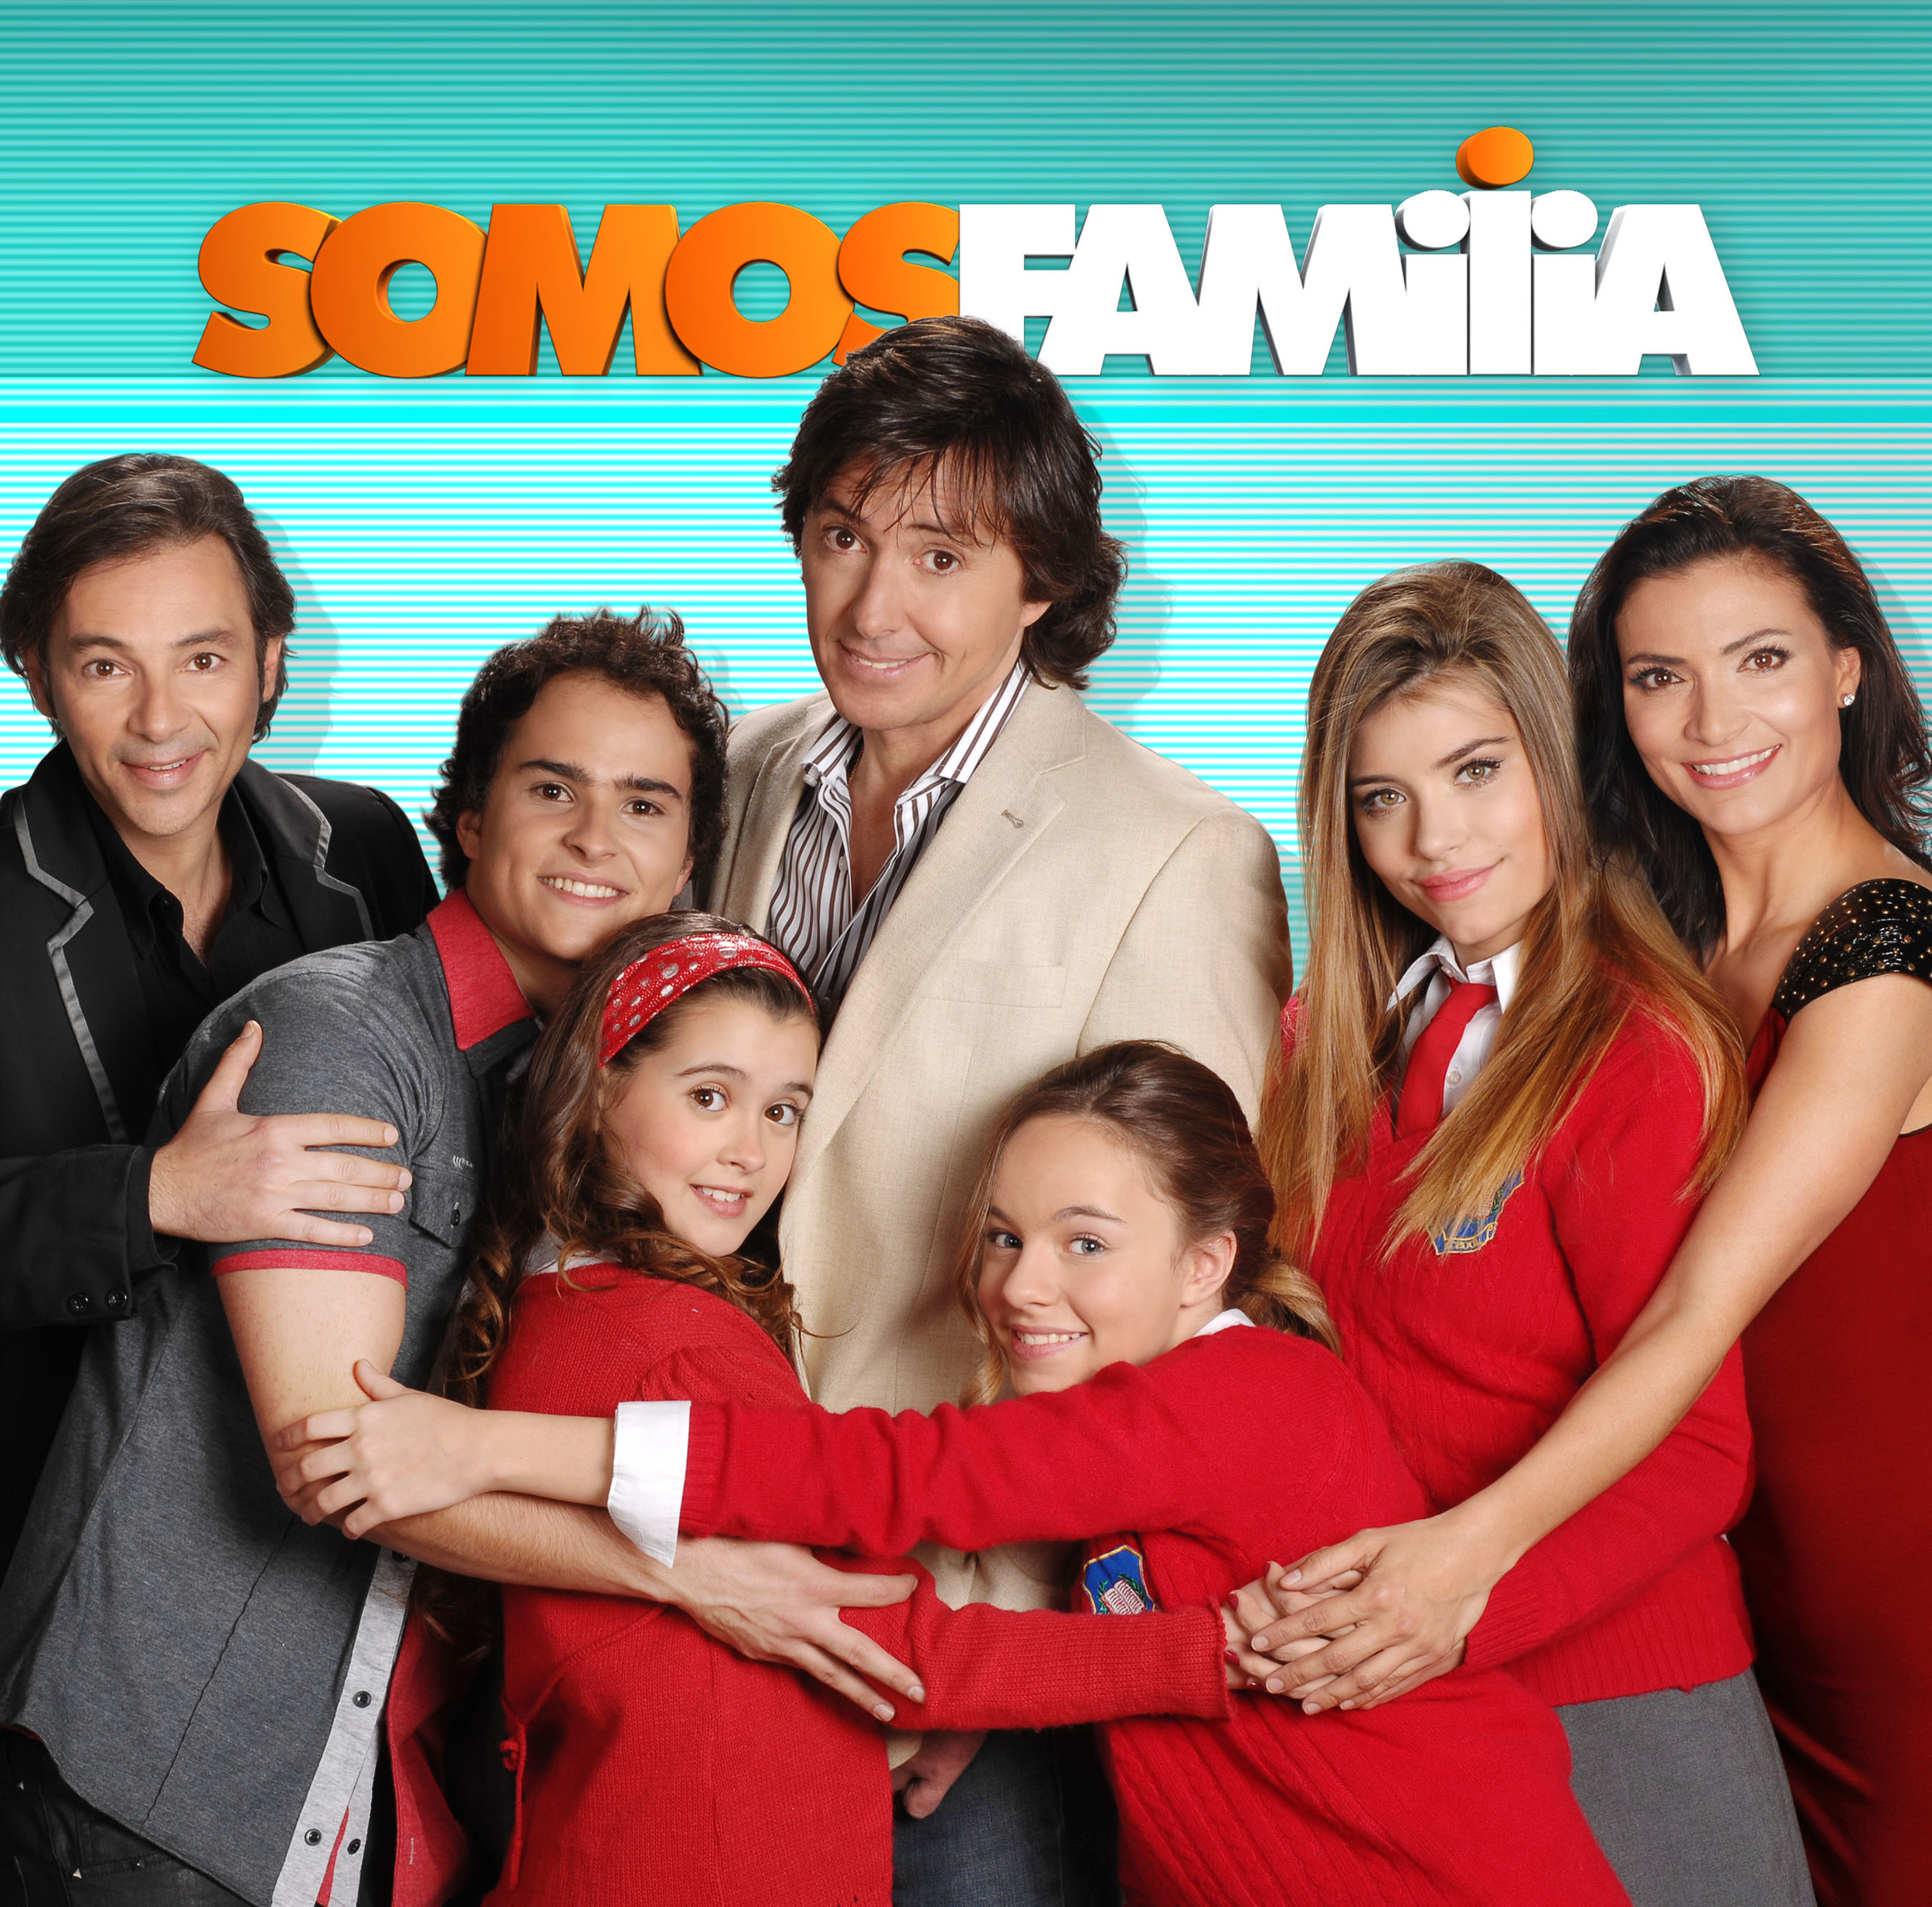 In April, VOXX STUDIOS starts the recordings for a new and exciting project : SOMOS FAMILIA - WE ARE FAMILY .     After delivering only successful projects in the last months, Voxx Studios takes the next challenge in dubbing 184 new episodes.      Somos familia   is a 2014 Argentine telenovela, aired by TELEFE. It is traditional and aimed at all age groups. The plot has similarities with   Grande, pá!  , one of Telefe's successful telenovelas of the 1990s. Bermúdez plays a traditional telenovela gentleman, seducing the female spectators with  romance rather than physical appearance. Although the program is mainly a drama, it includes some comedy scenes.